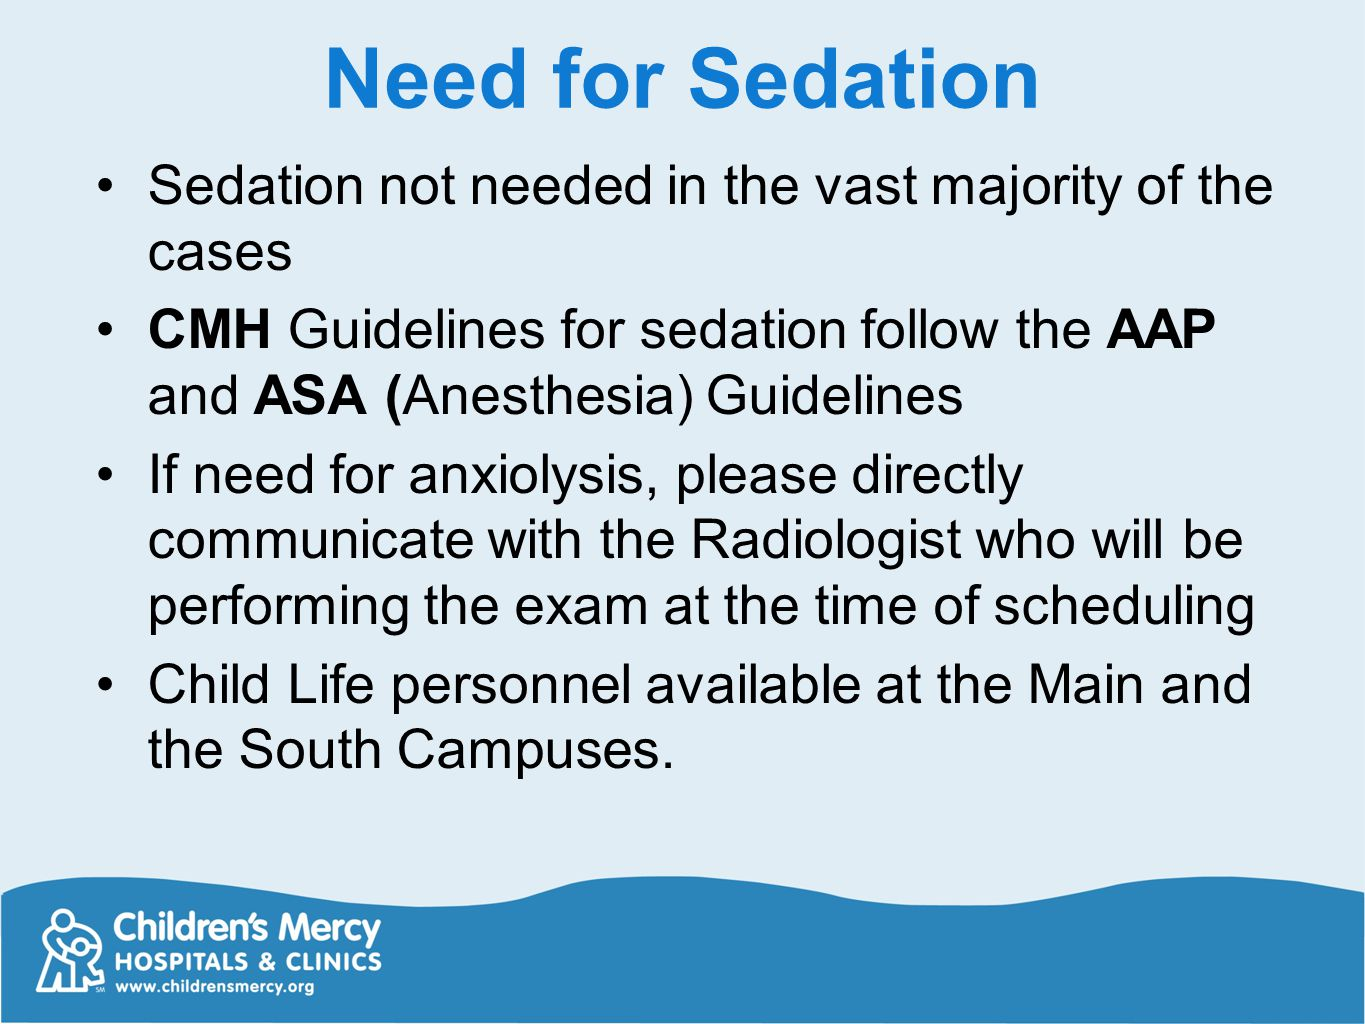 Need for Sedation Sedation not needed in the vast majority of the cases. CMH Guidelines for sedation follow the AAP and ASA (Anesthesia) Guidelines.